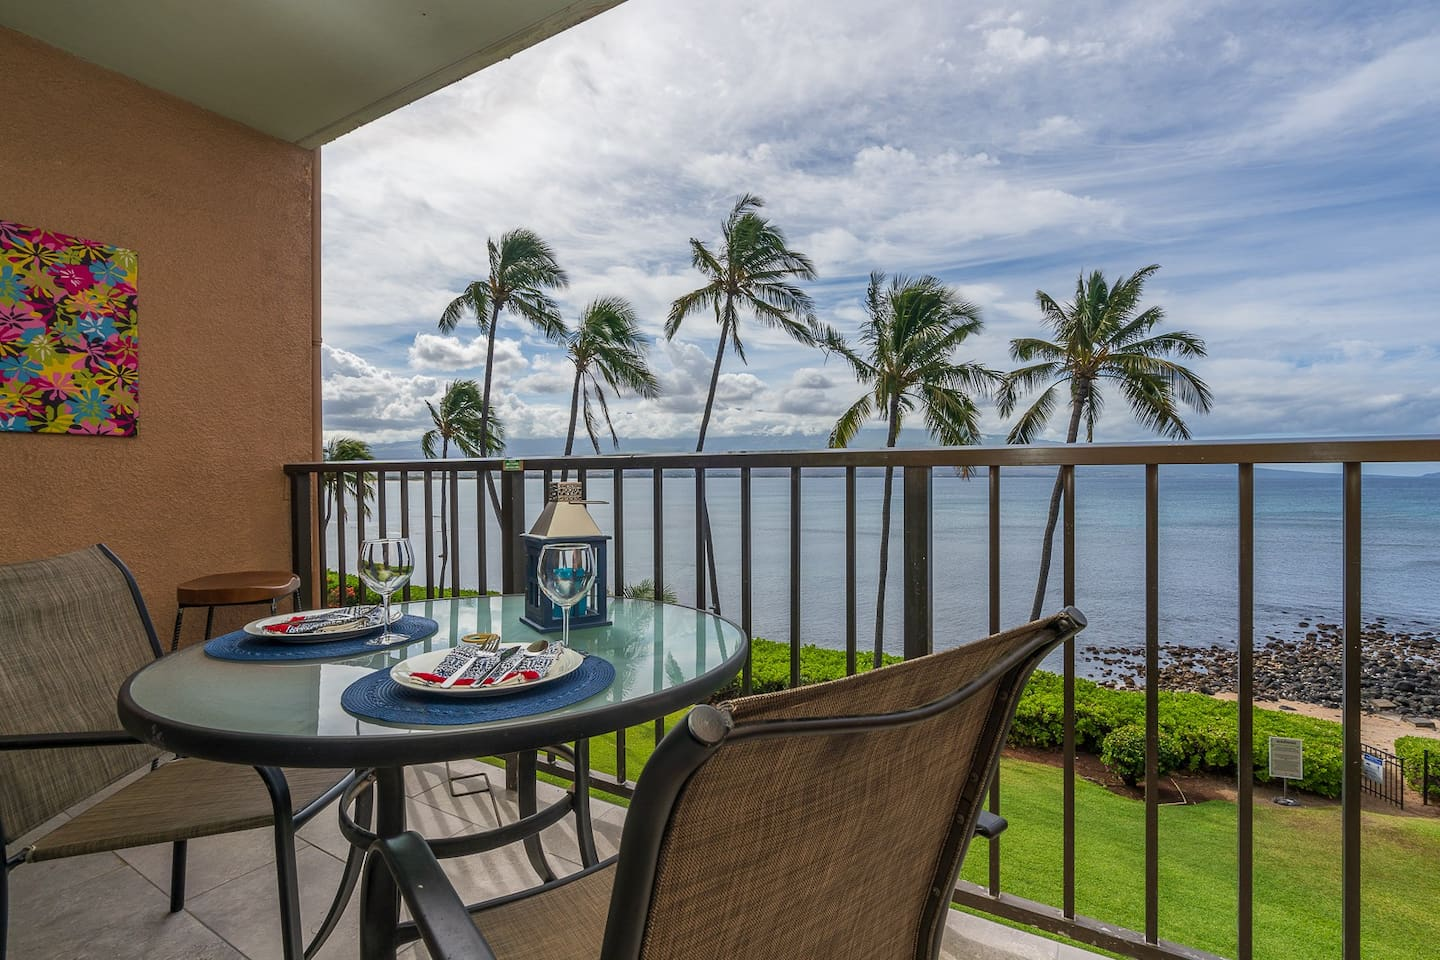 360 degree oceanfront view from lanai